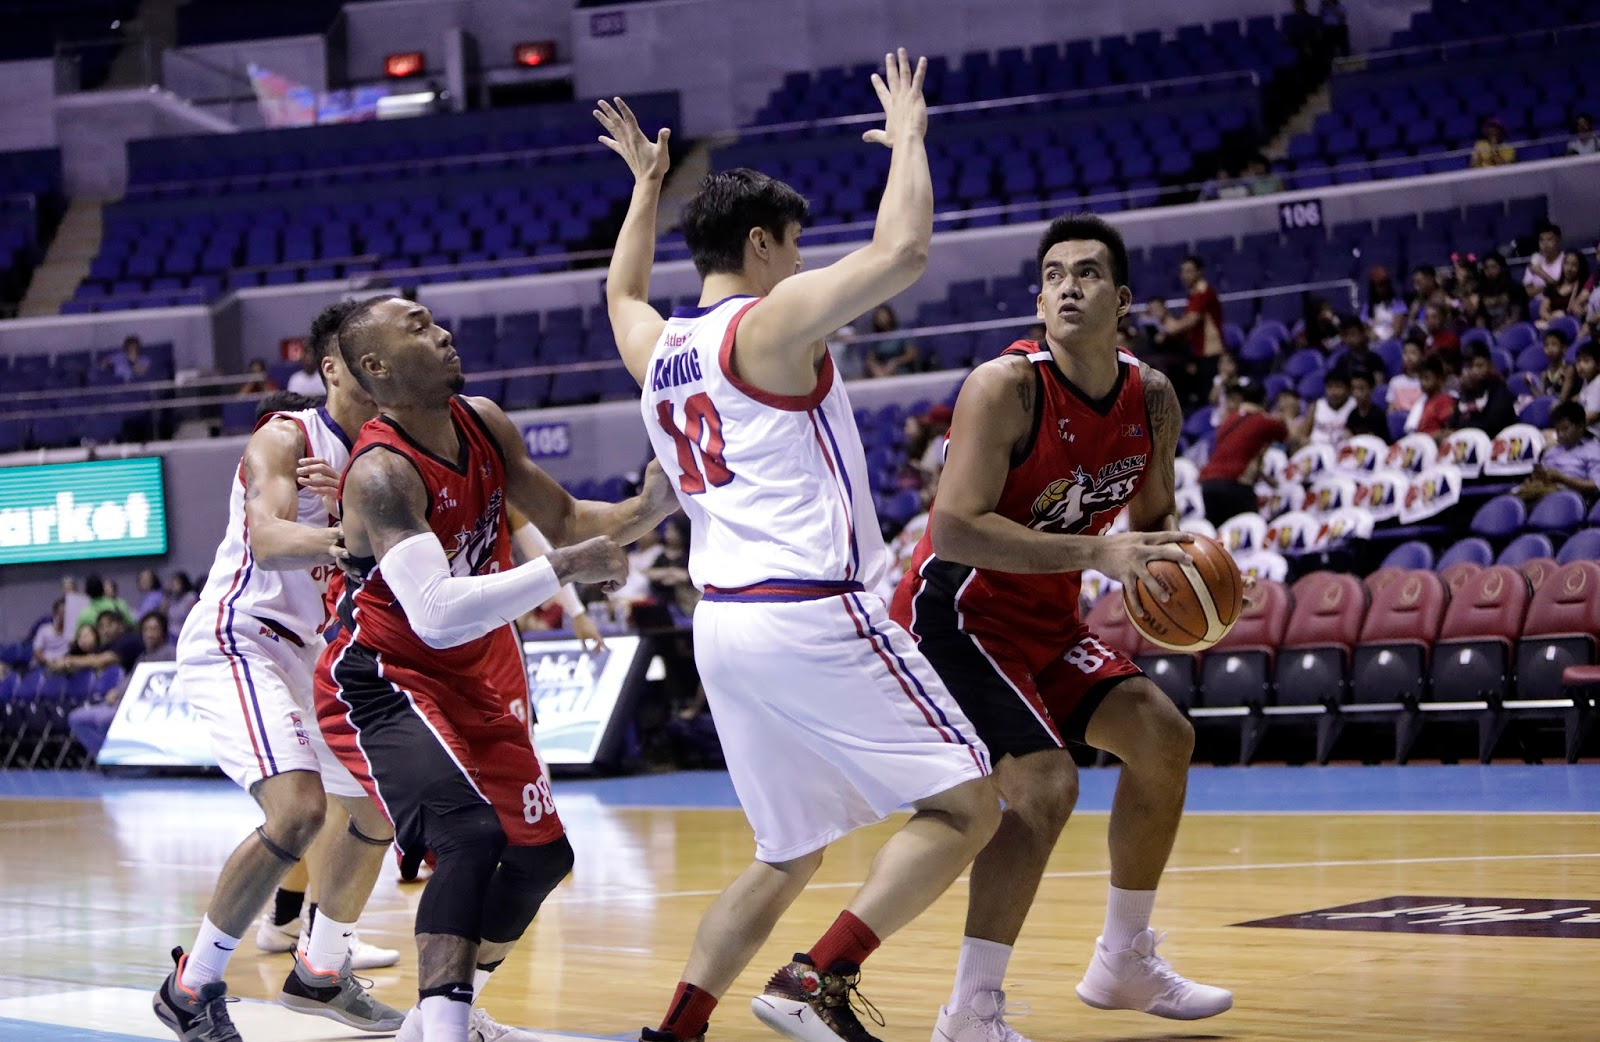 Alaska trips Columbian with 31-point rout